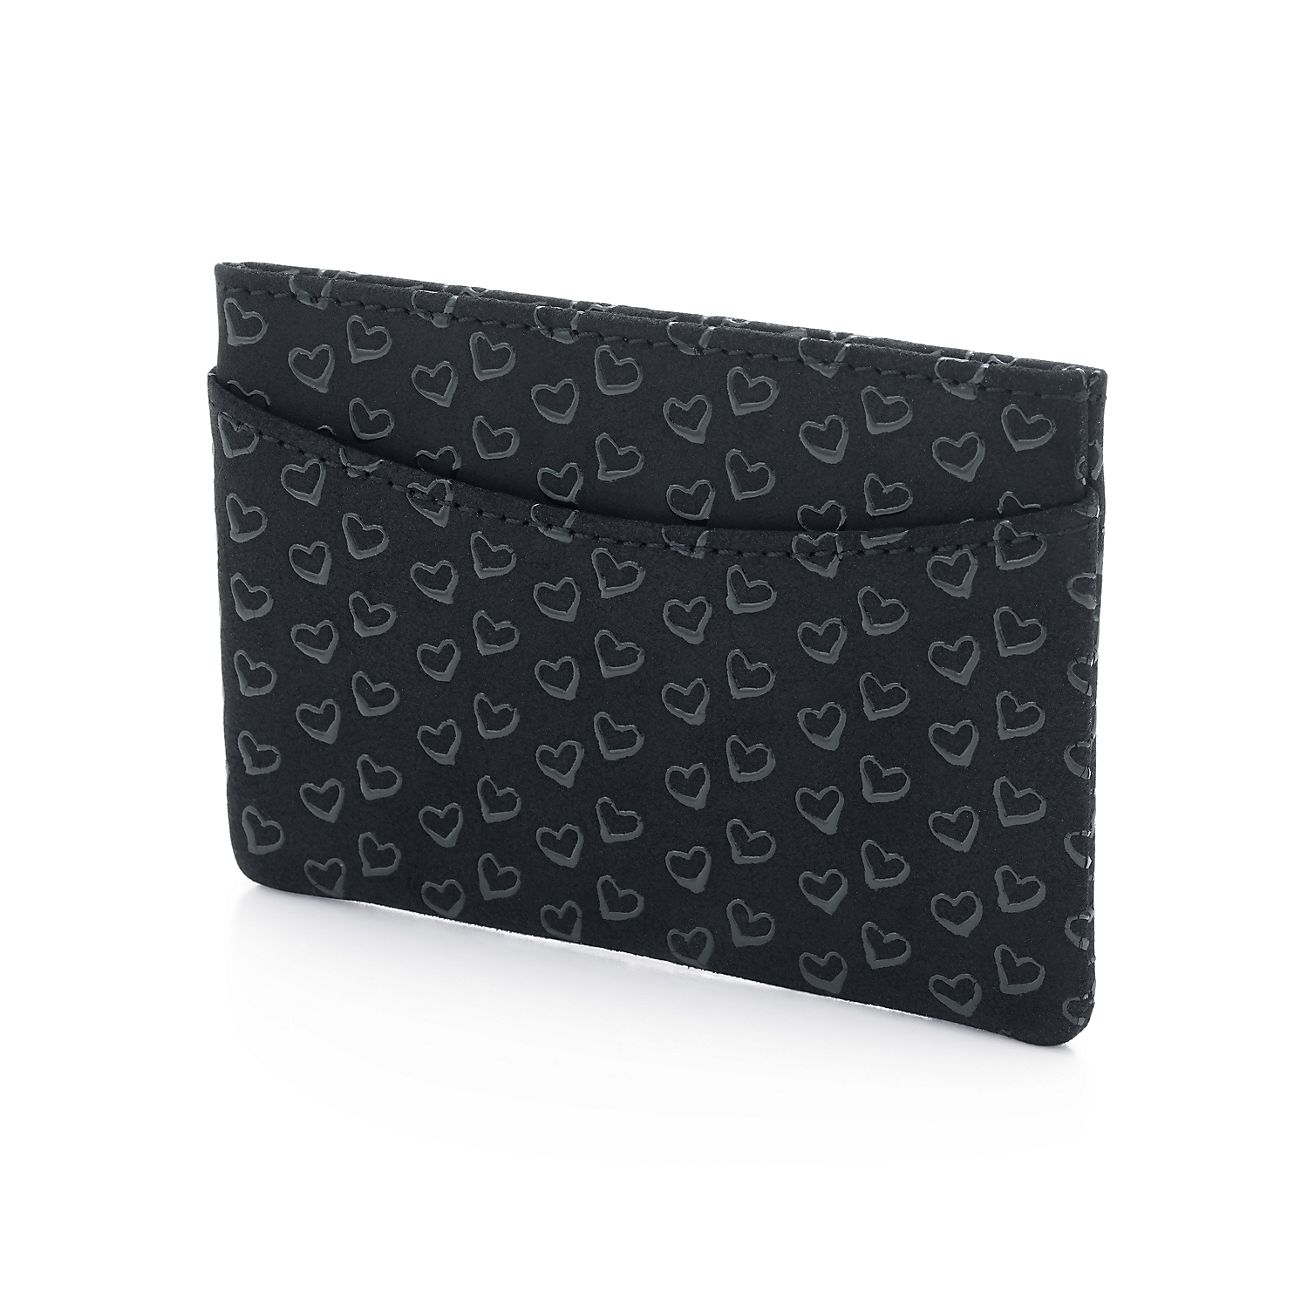 Elsa Peretti card case in black leather with lacquered Open Hearts Tiffany & Co.